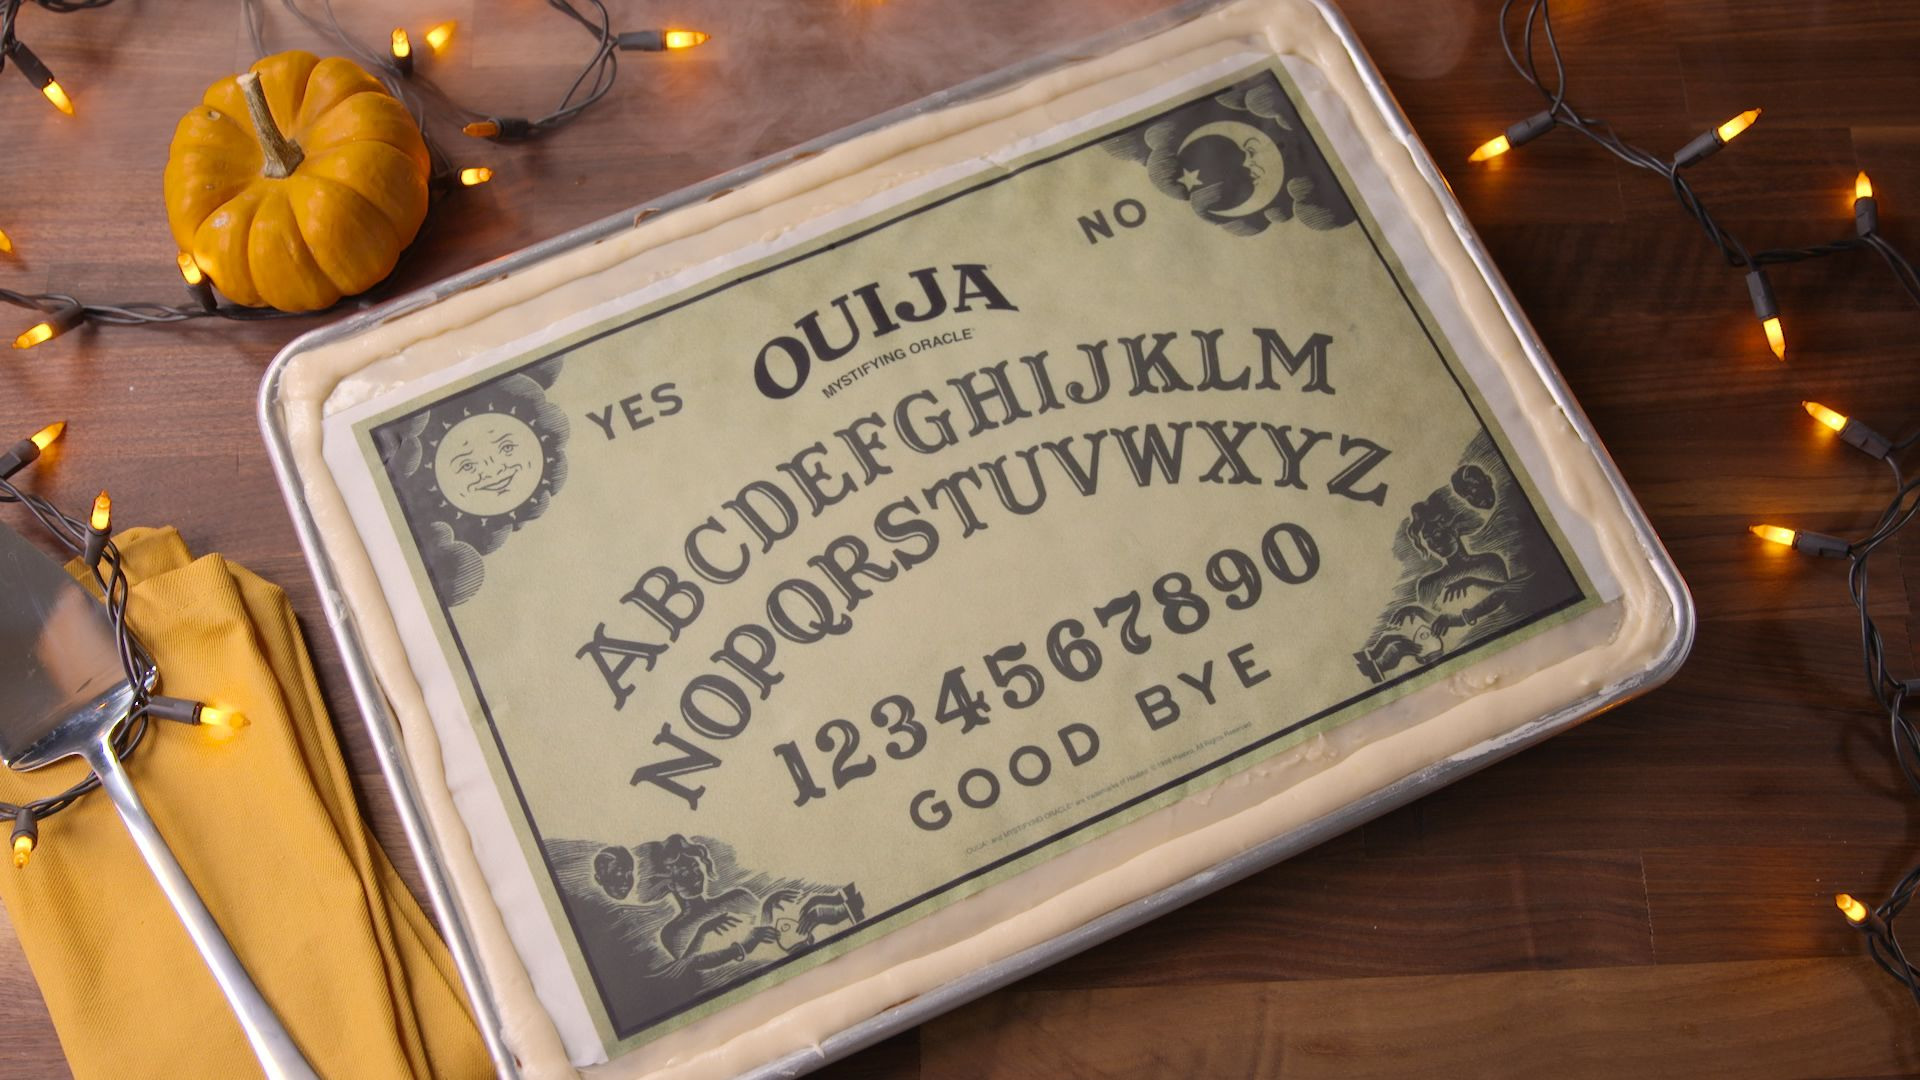 How To Make A Ouija Board Cake